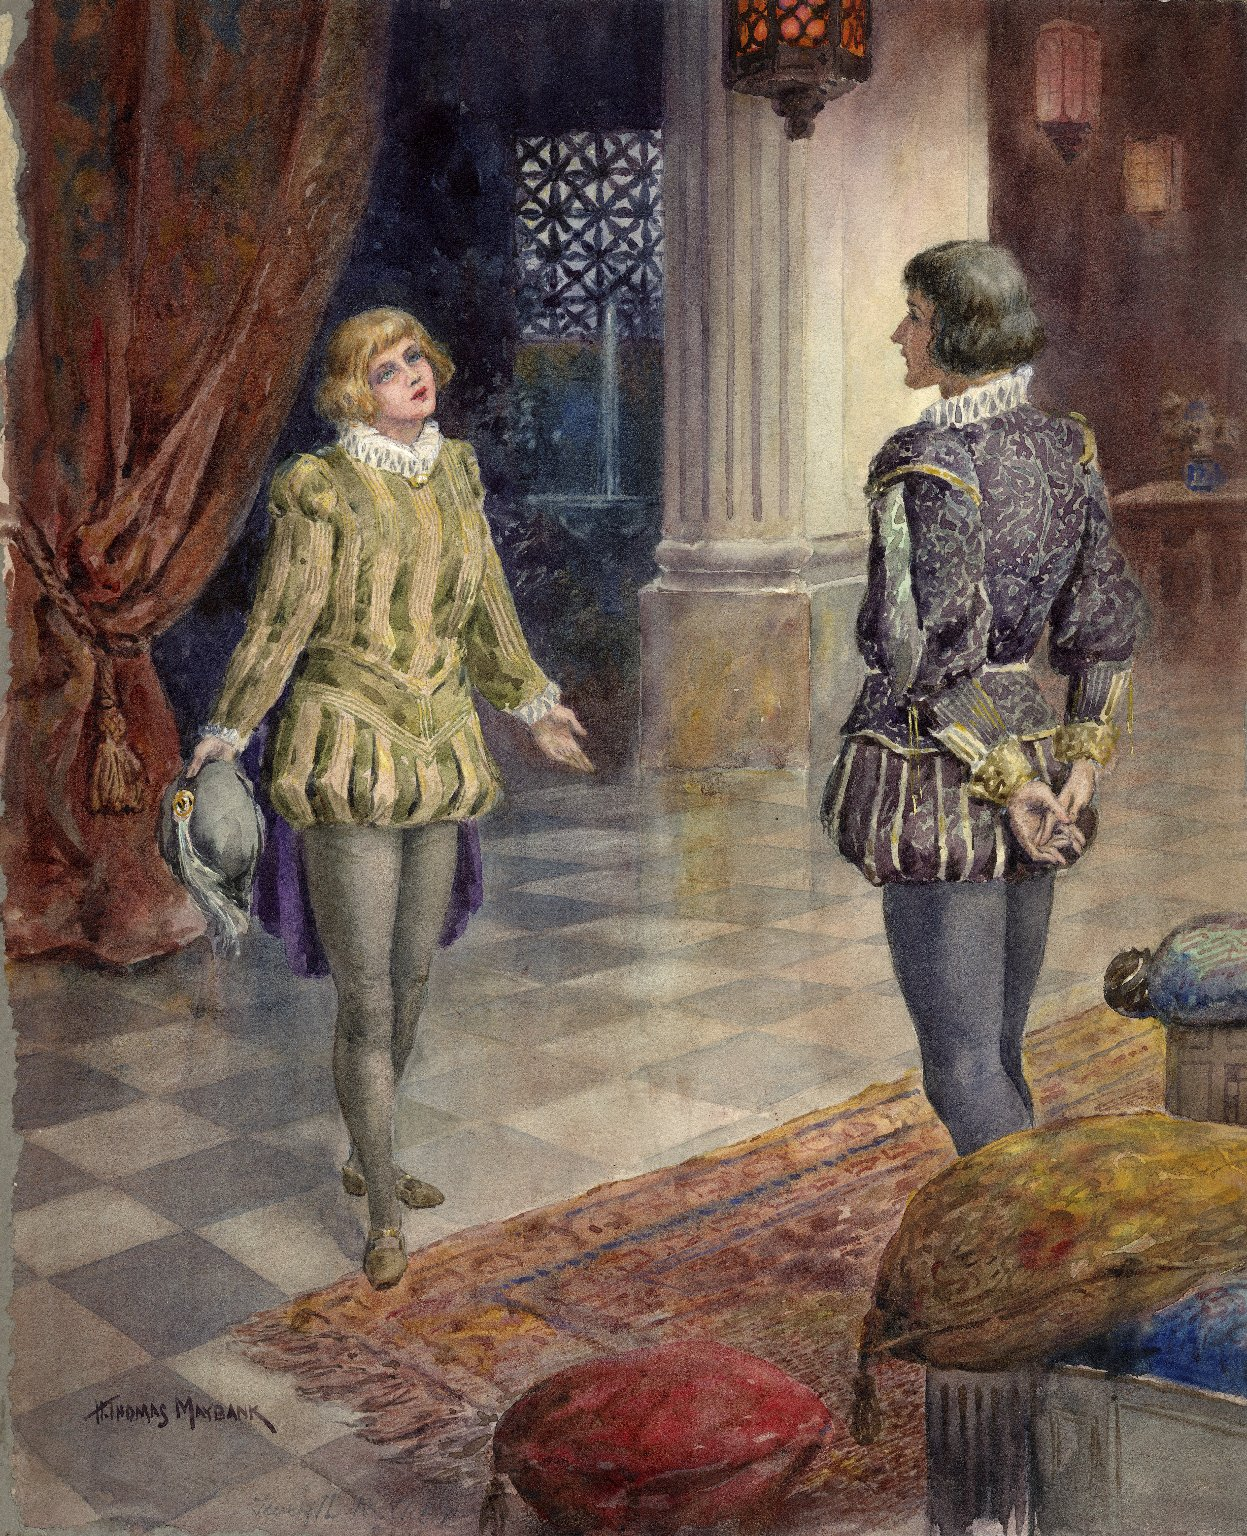 [Twelfth night, act 1, scene 4] [graphic] / H. Thomas Maybank.